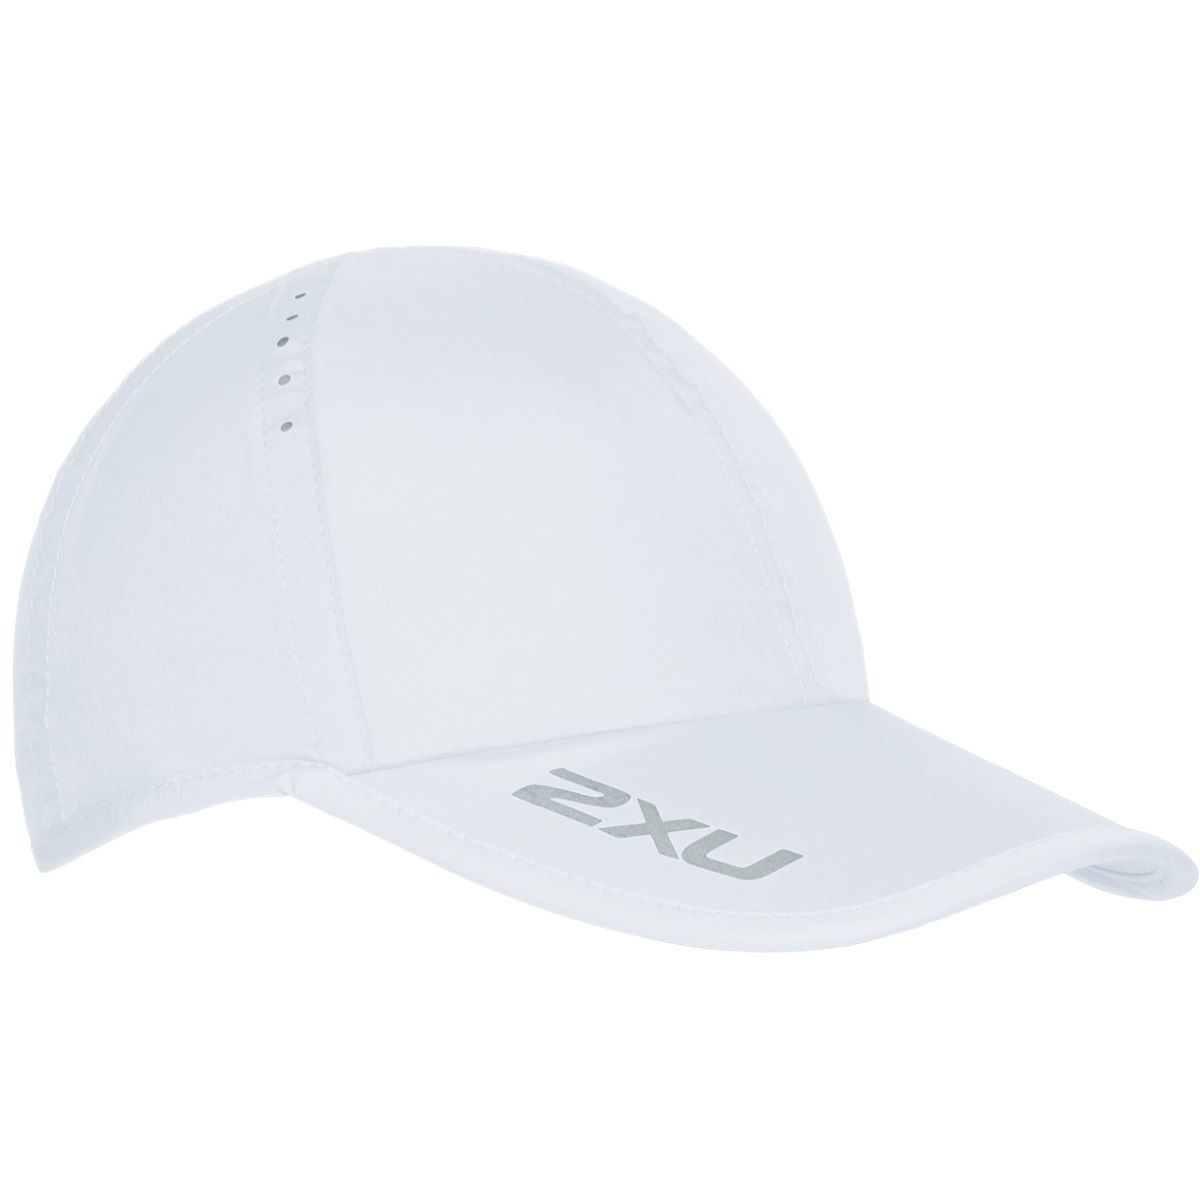 2XU Run Cap  -  Caps